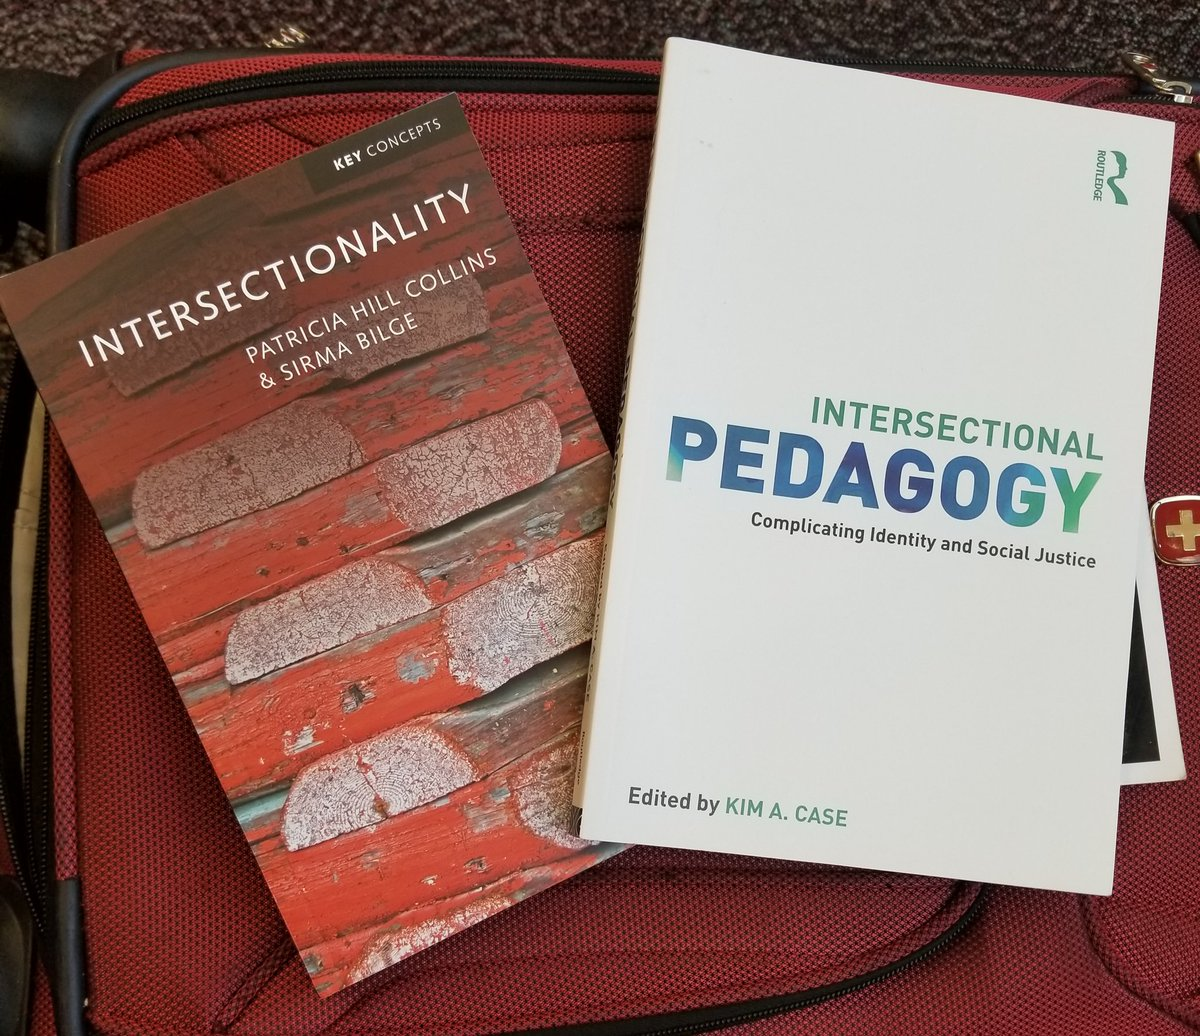 TSA pulled my bag for inspection. The feared objects were books on #Intersectionality and Intersectional Pedagogy.   Even TSA knows that Radical #Feminist Theory is infinitely powerful and dangerous to the status quo!  #academia #womeninscience .@BlackFeminisms .@citeblackwomen<br>http://pic.twitter.com/HMBBooAn5Z